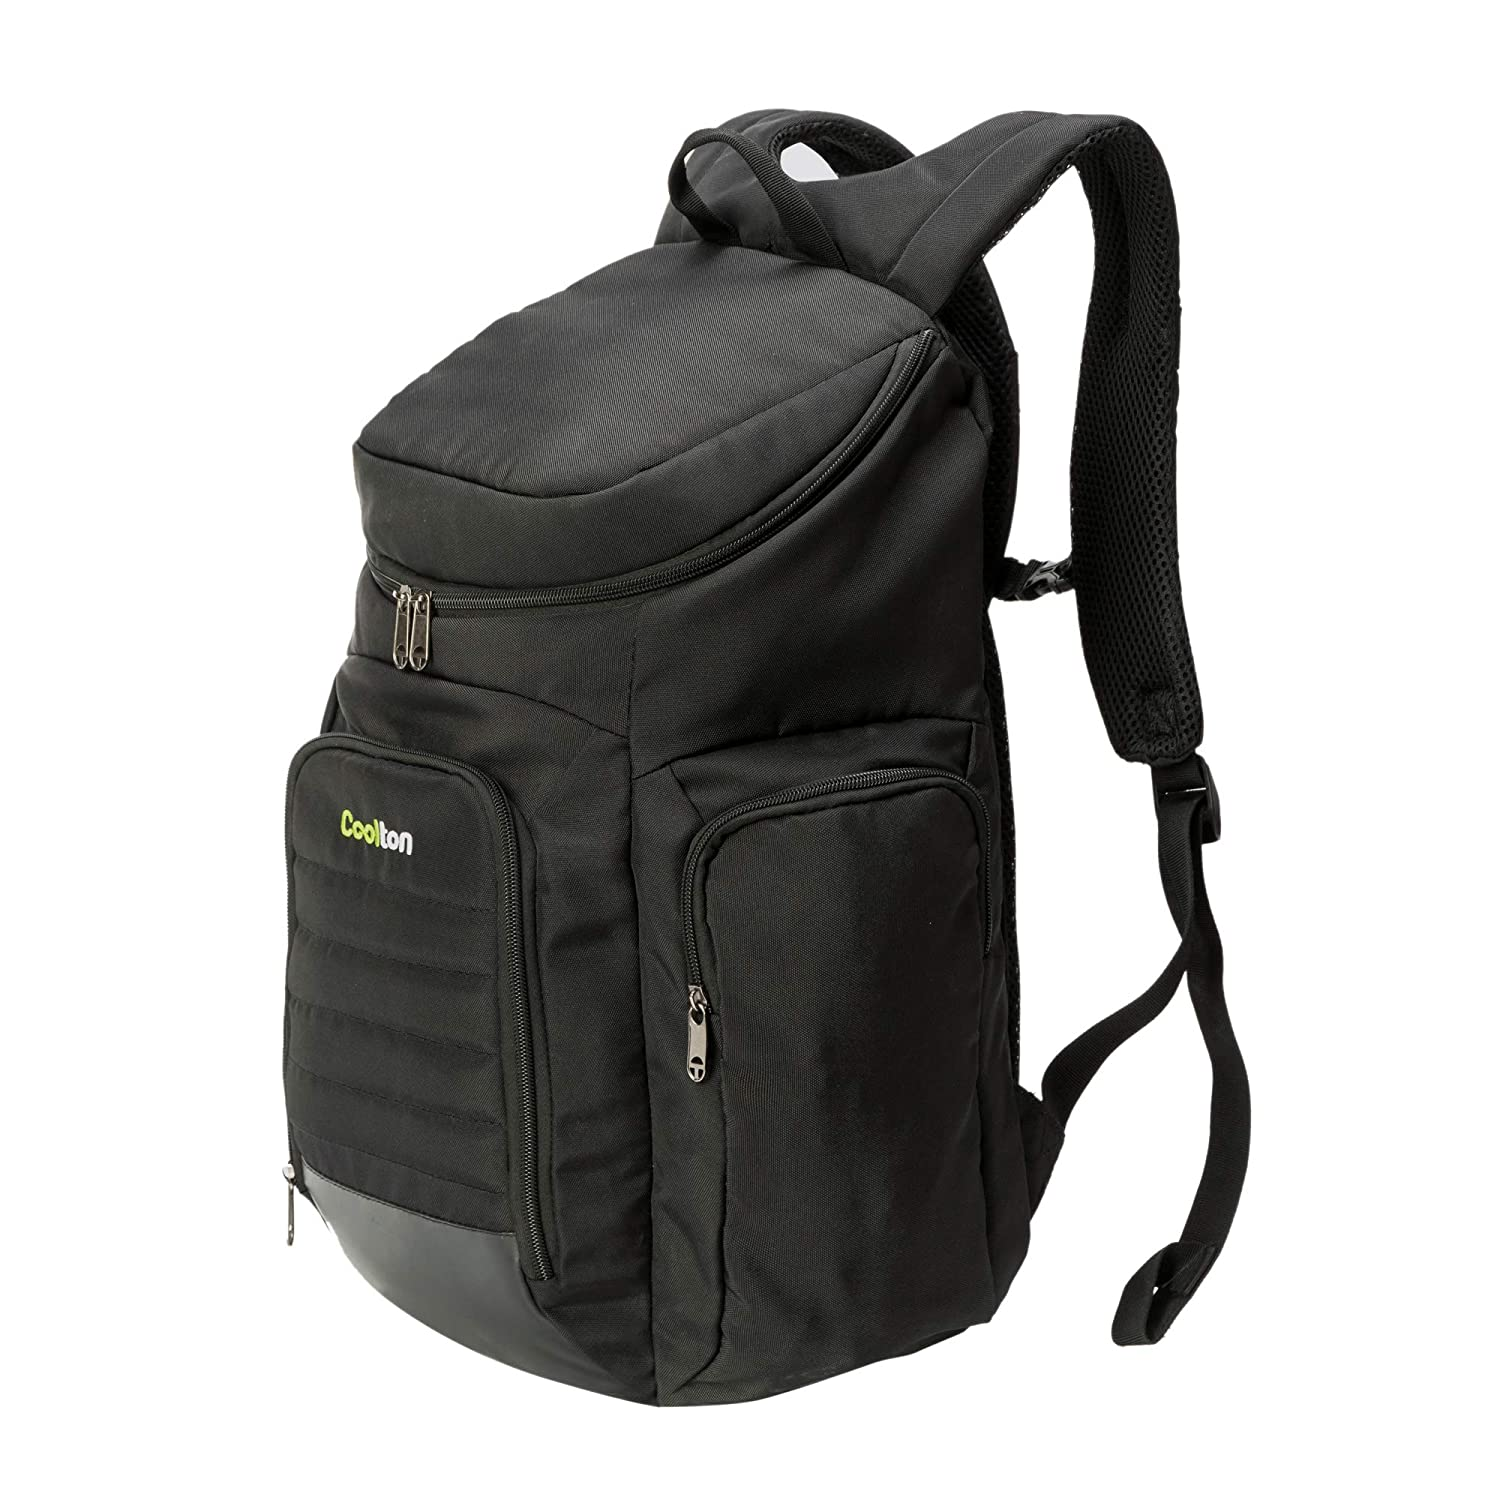 5e5d31b905 Coolton Gym Backpack